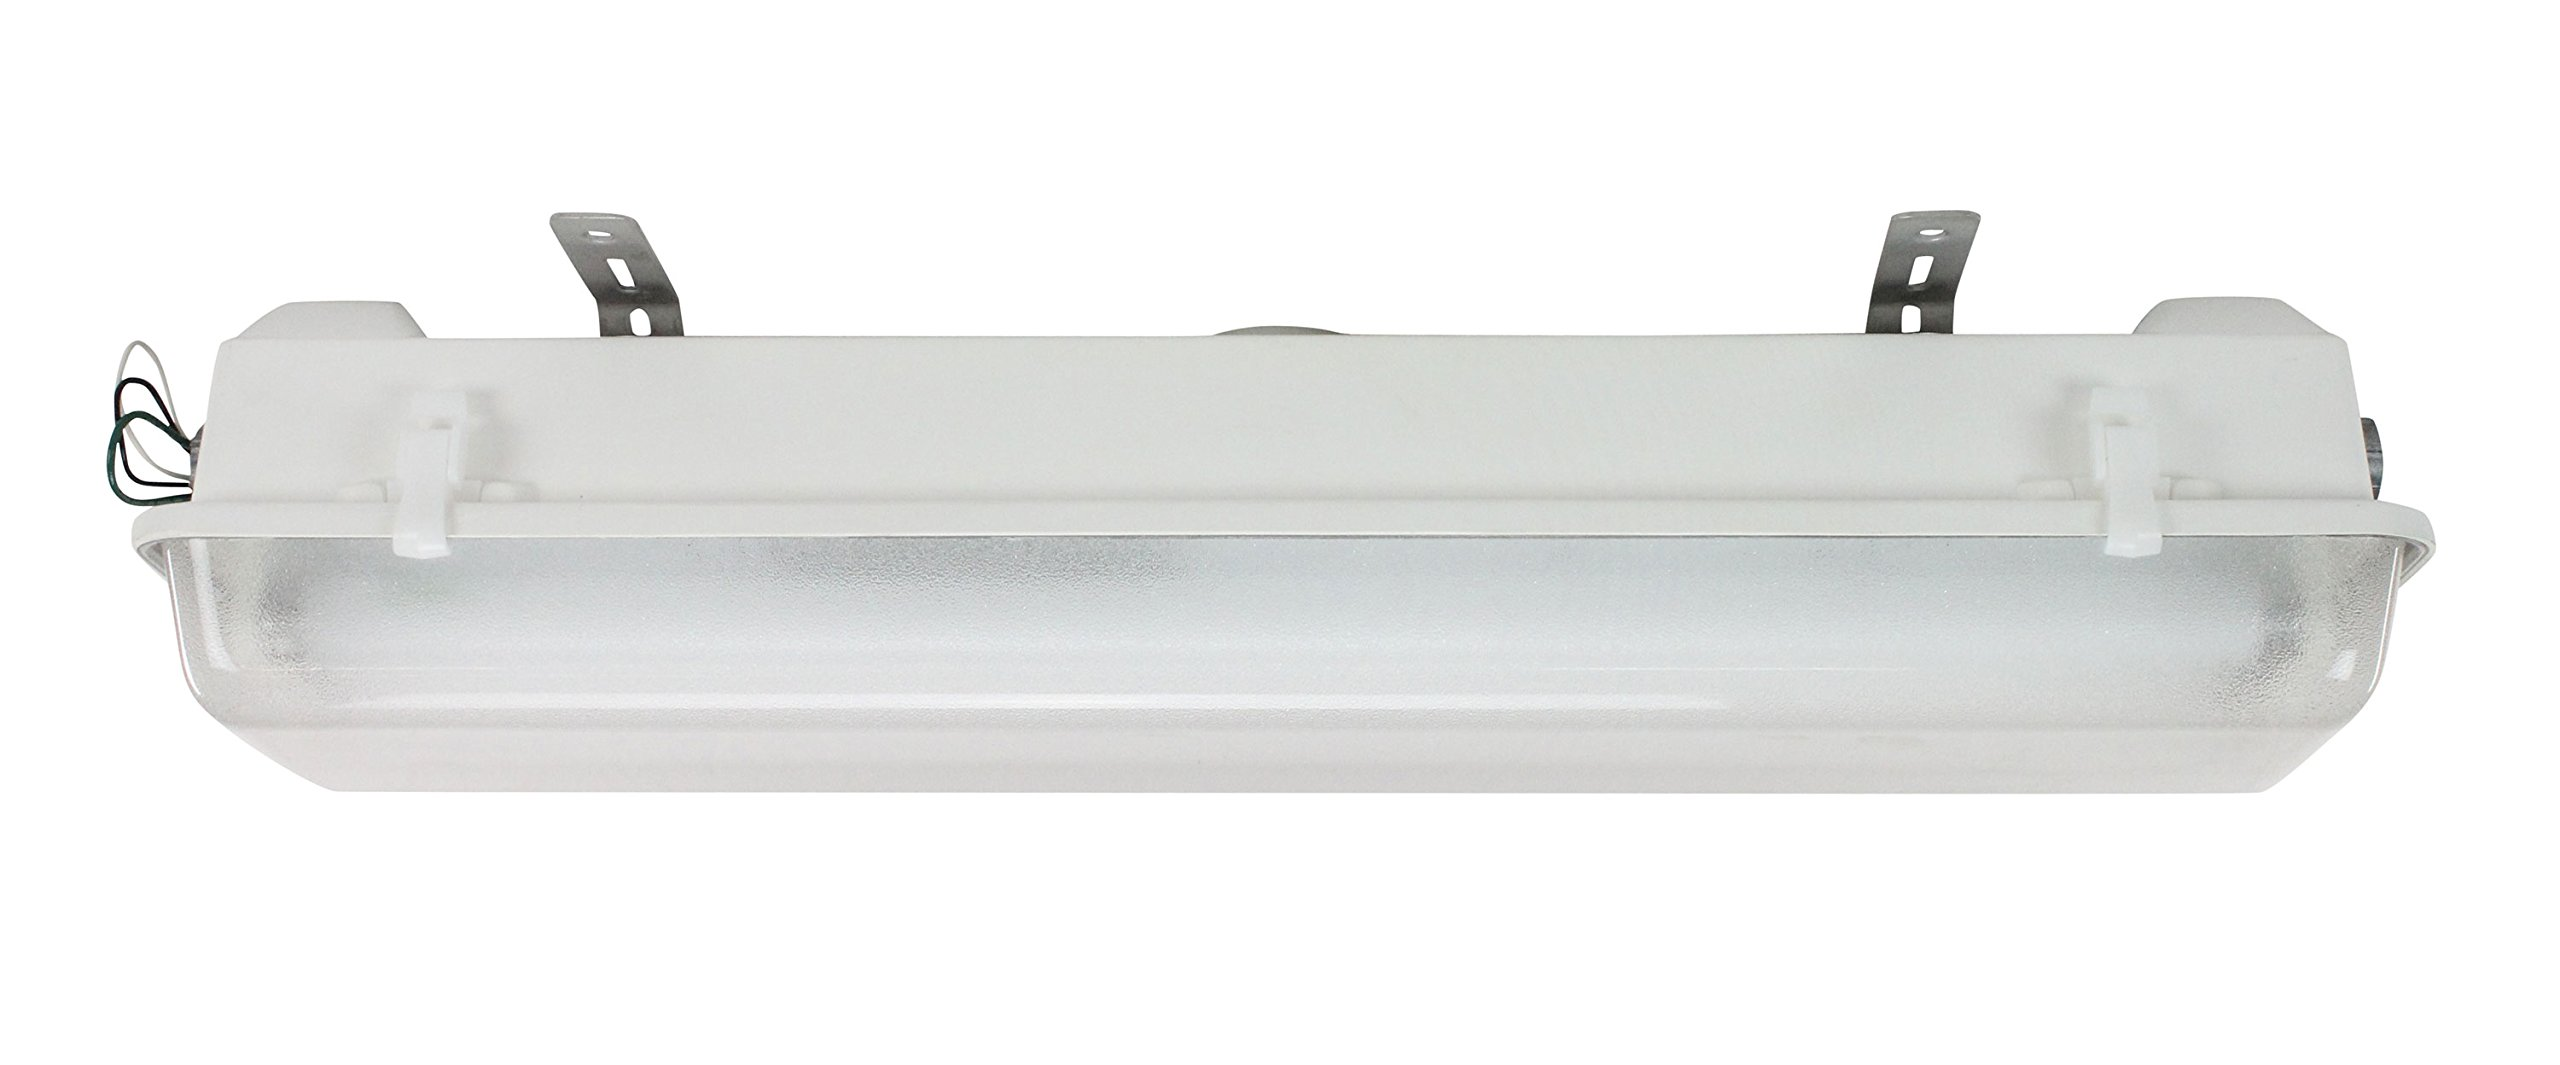 Class I, Div. II Fluorescent Light for Corrosion Resistant Requirements - 2' Lamps - Low Voltage(-24 Volt)